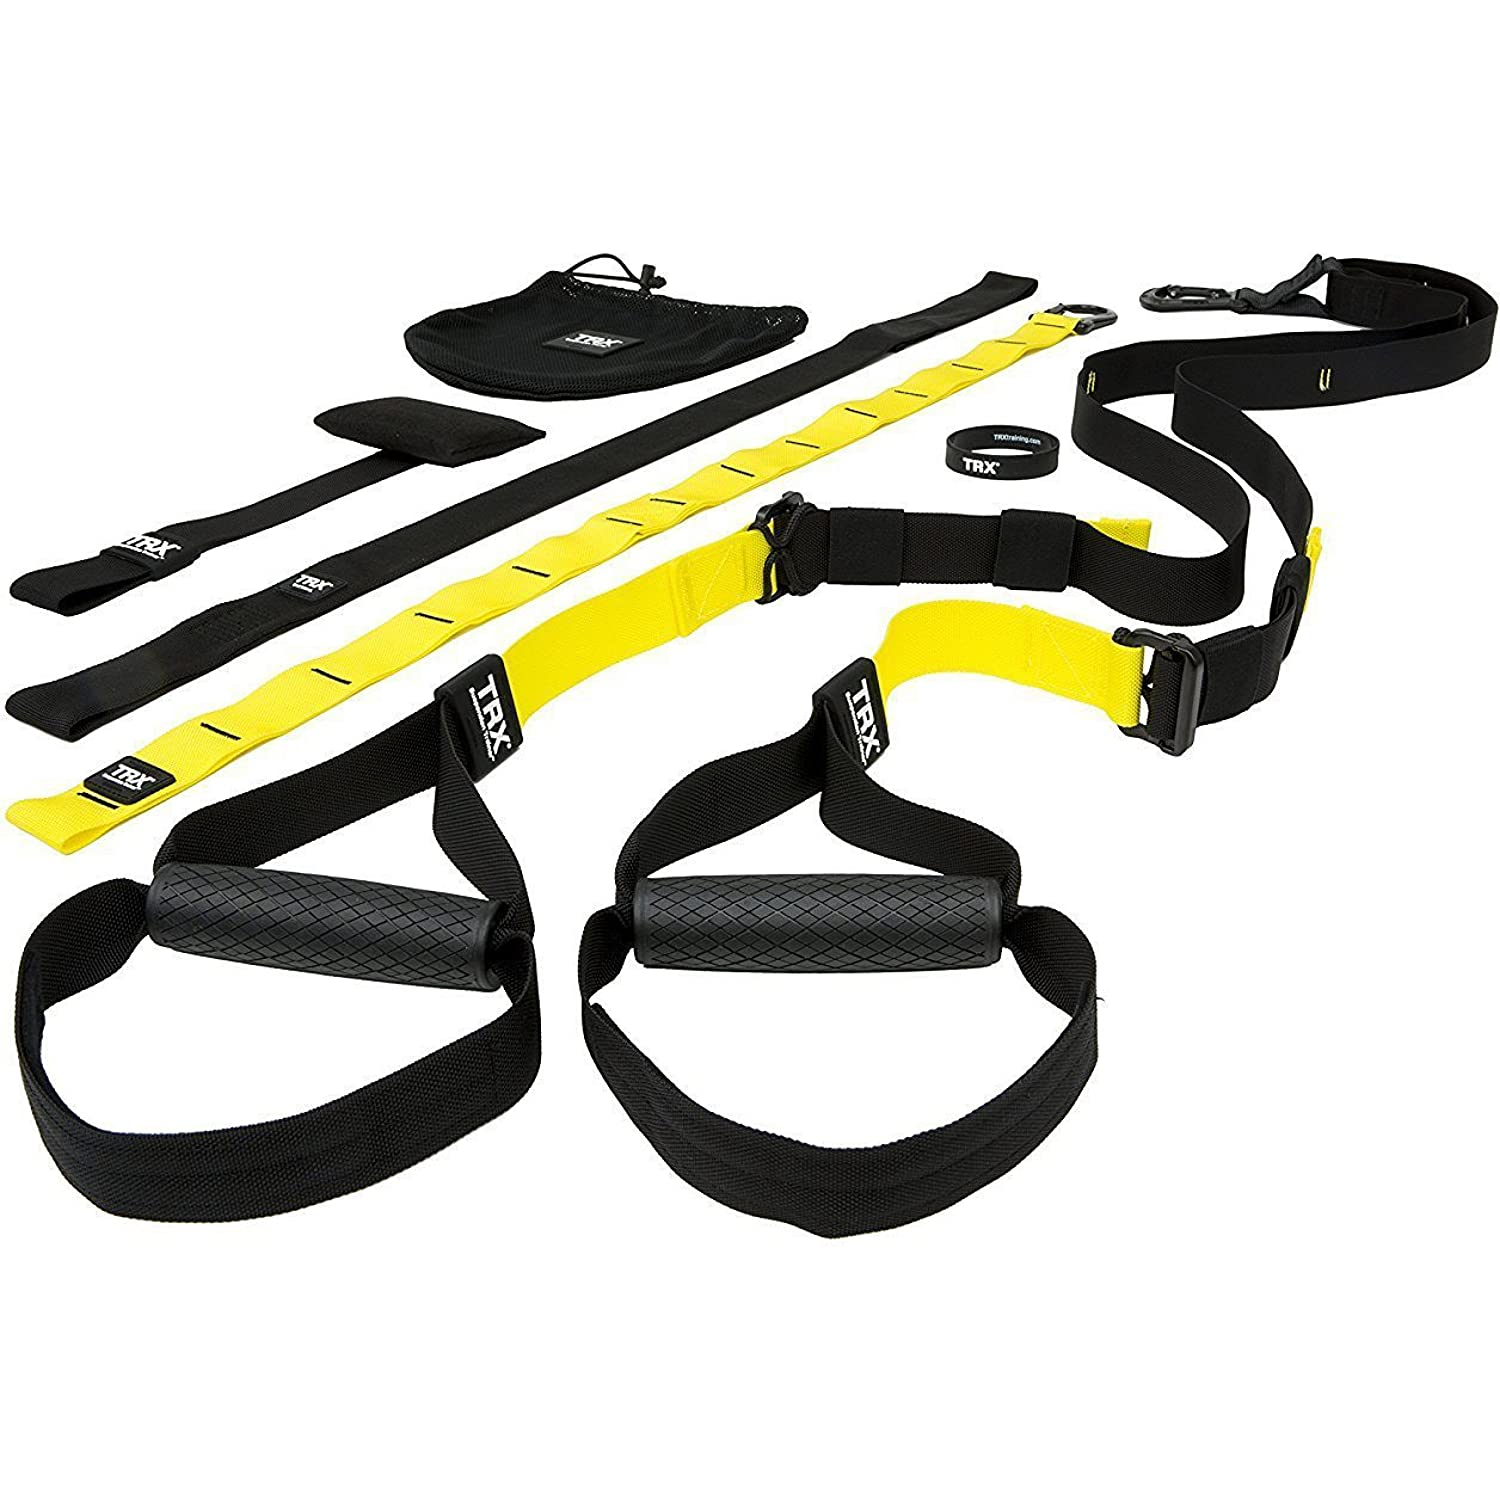 TRX Training - Pro 3 Suspension Training Kit